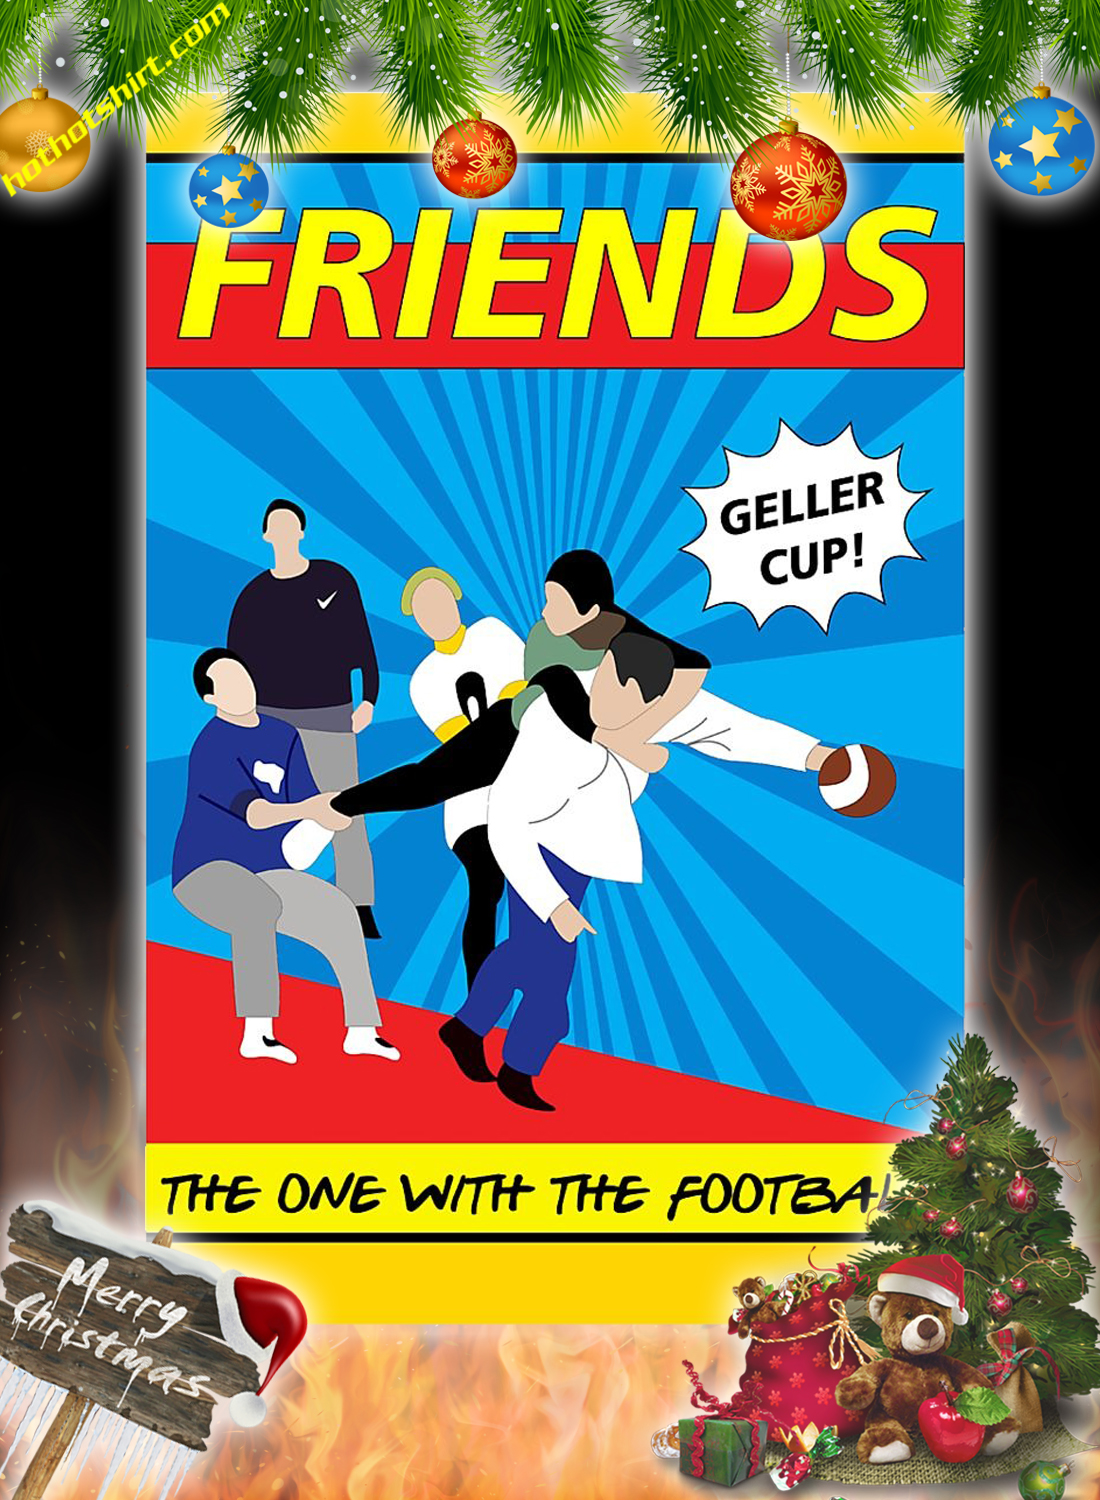 Friends the one with the football poster 3